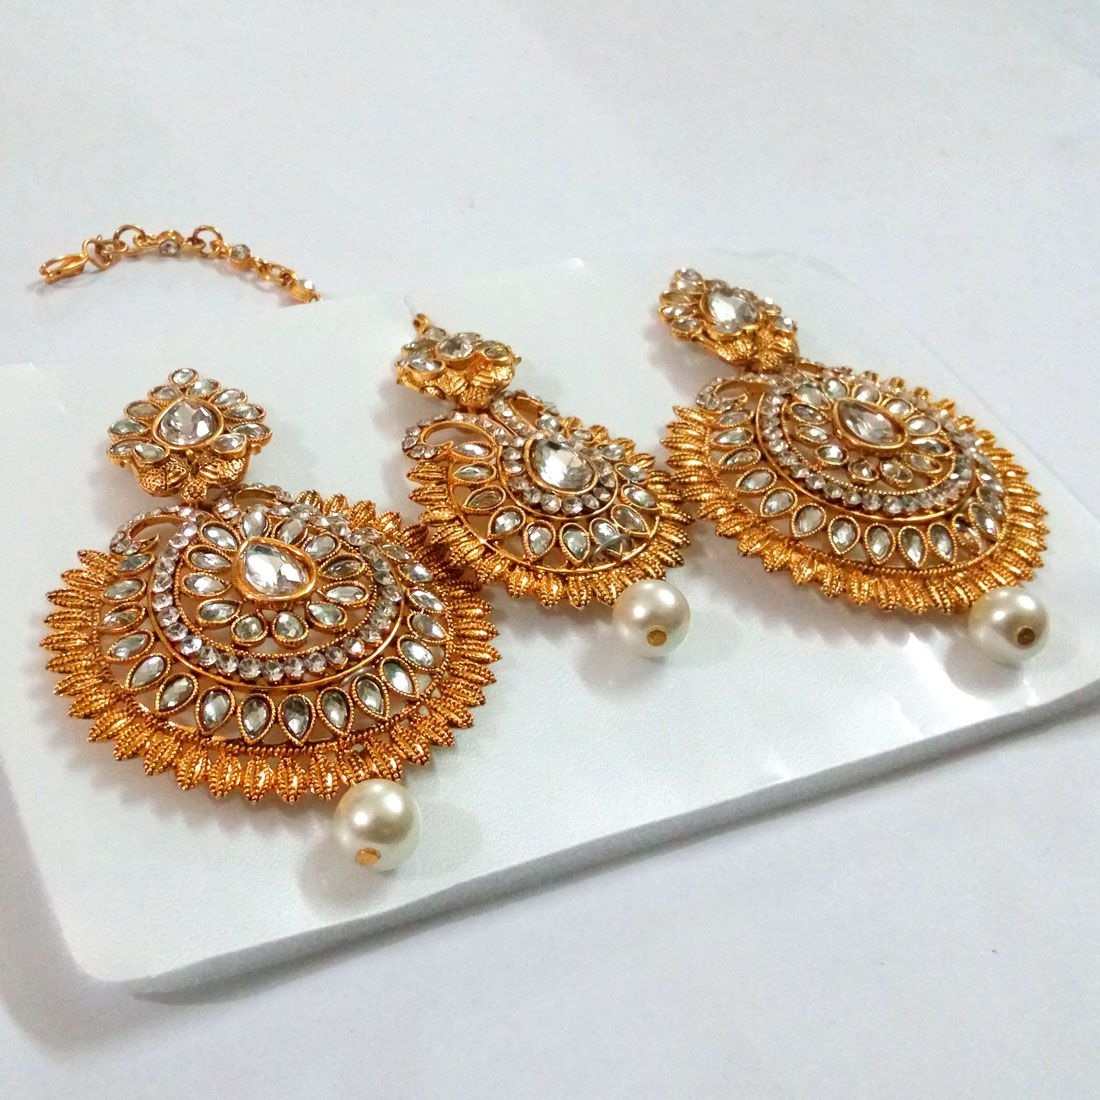 Jaipur Mart White Color Imitation Pearl & Glass Stone Earrings With Maang Tikka